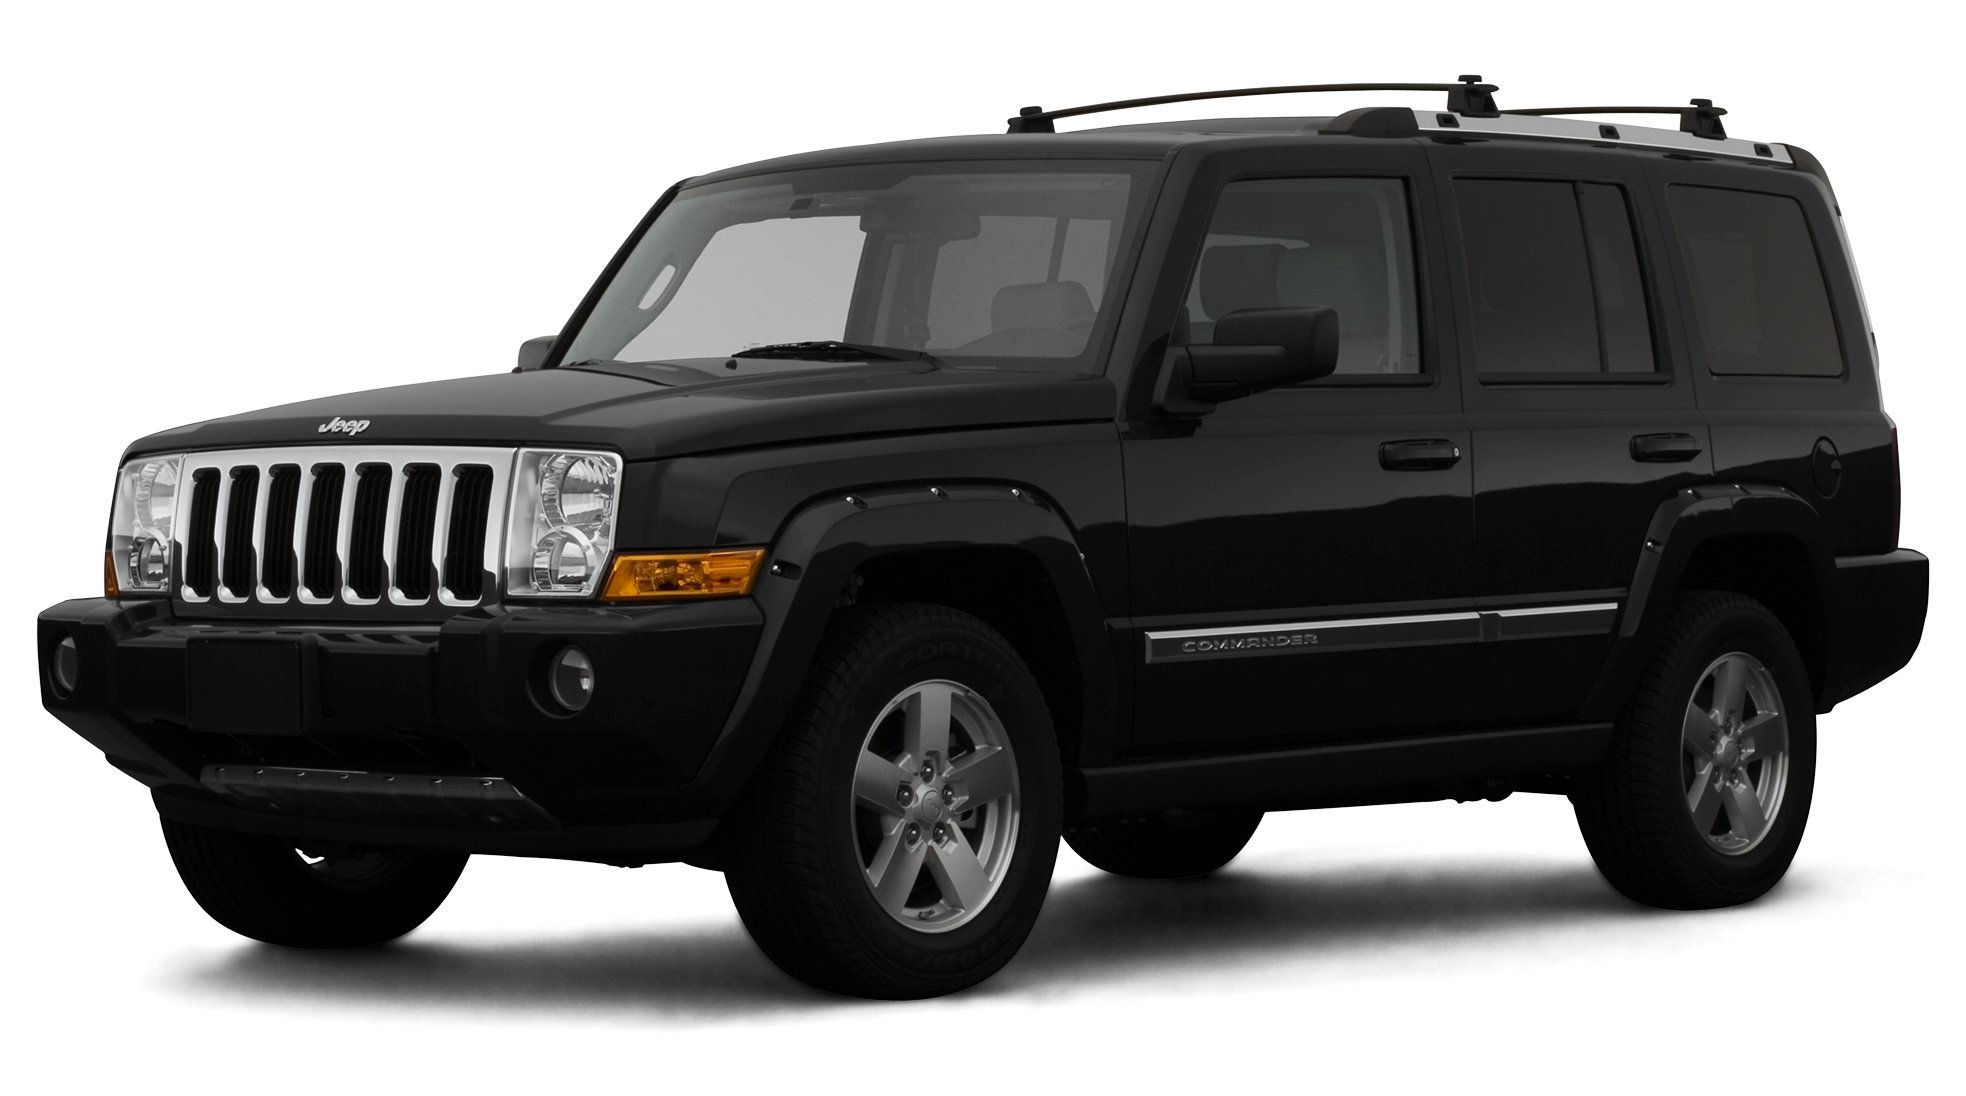 2007 jeep commander reviews images and specs. Black Bedroom Furniture Sets. Home Design Ideas